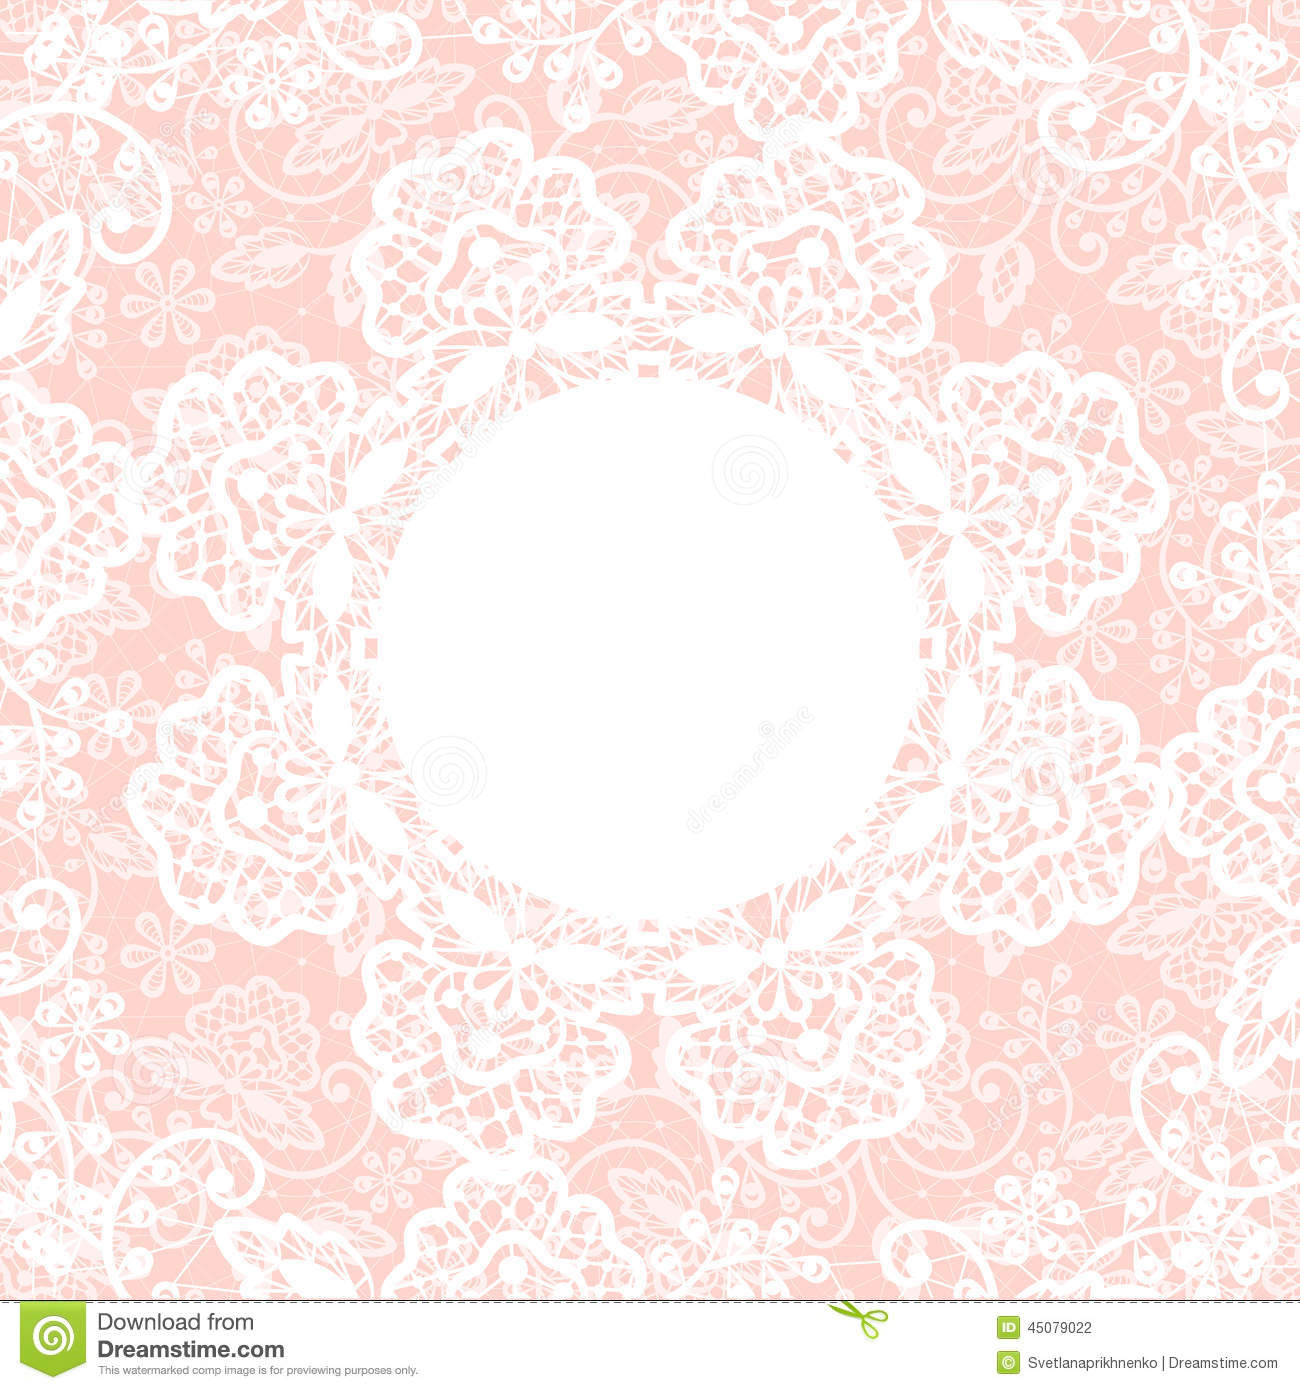 white lace tumblr backgrounds - photo #28